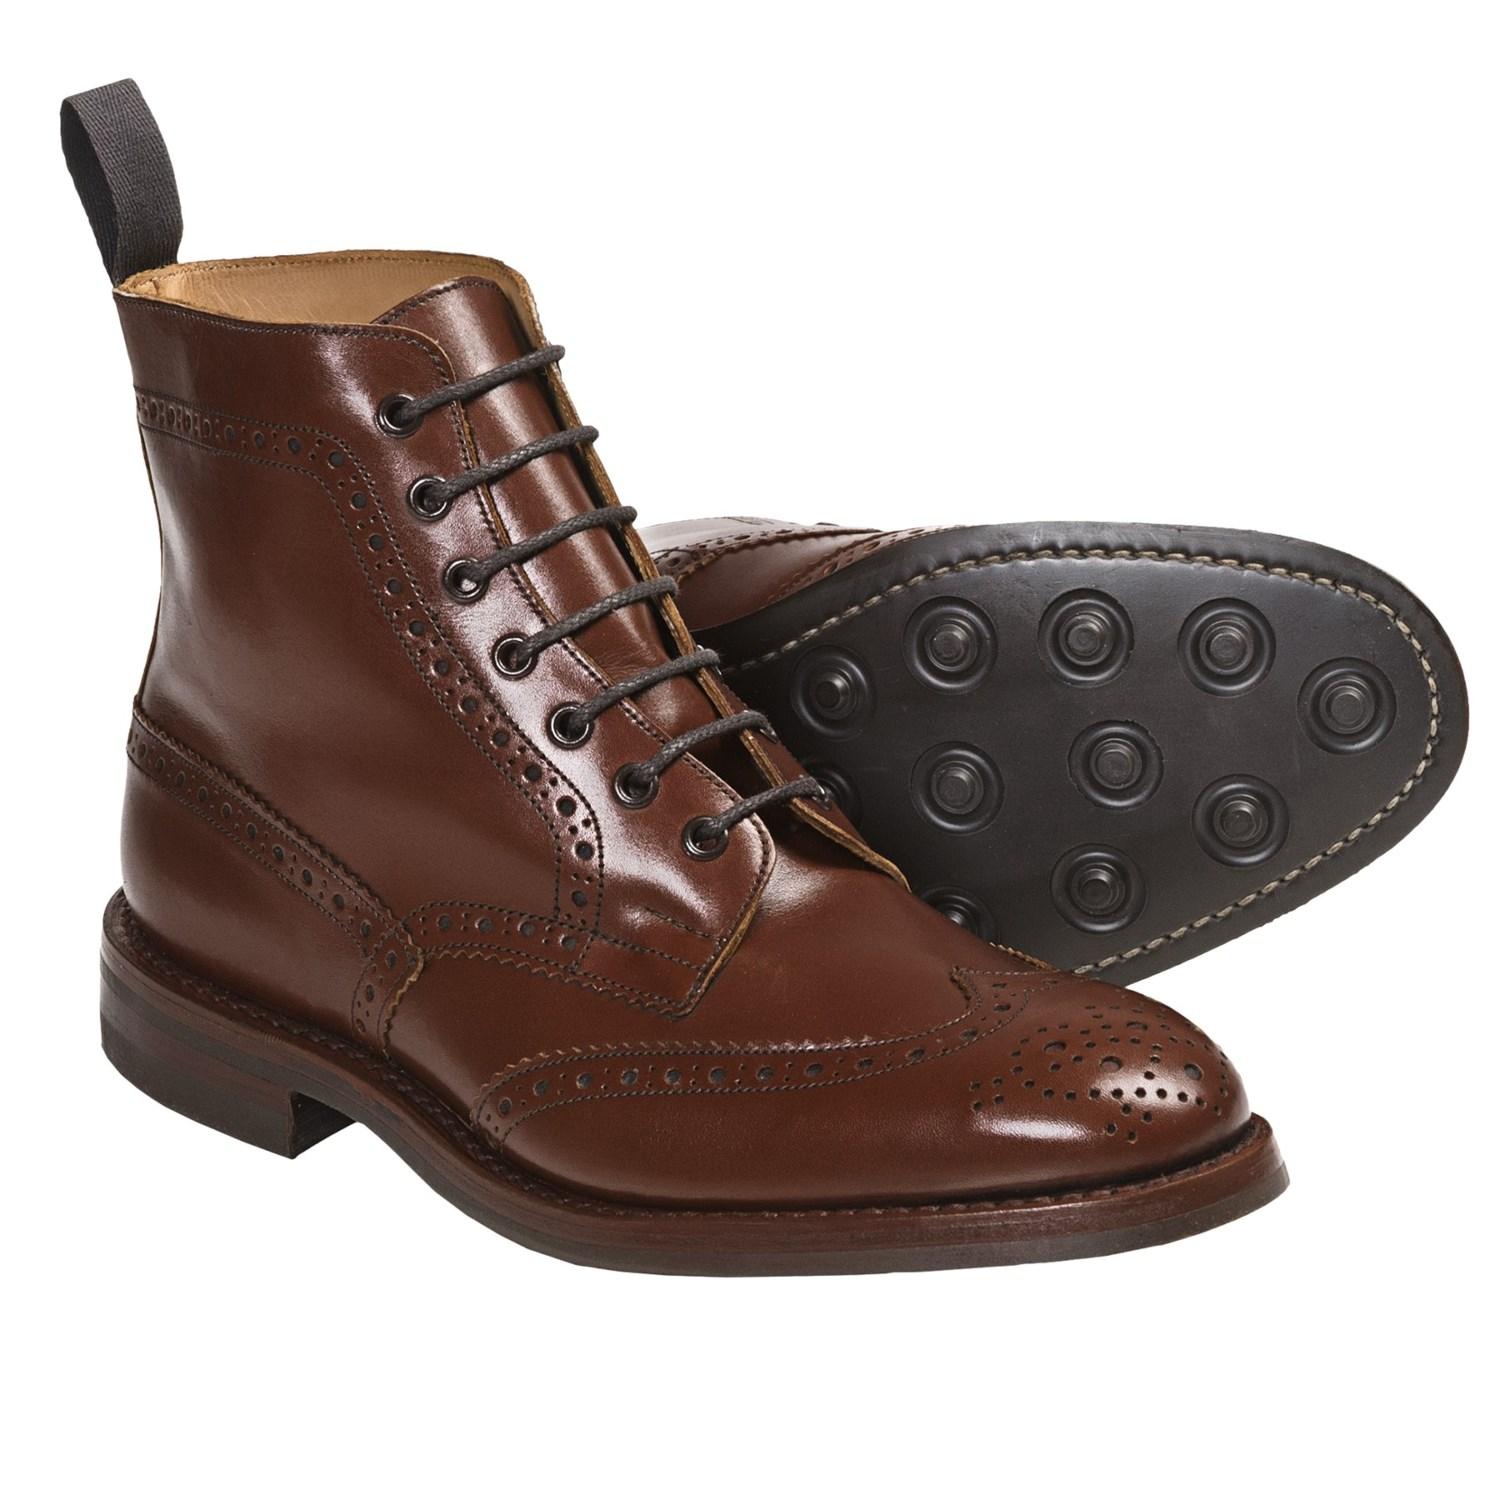 tricker%E2%80%99s-langston-wingtip-boots-leather-for-men-in-beechnut%7Ep%7E4762x_02%7E1500.3.jpg